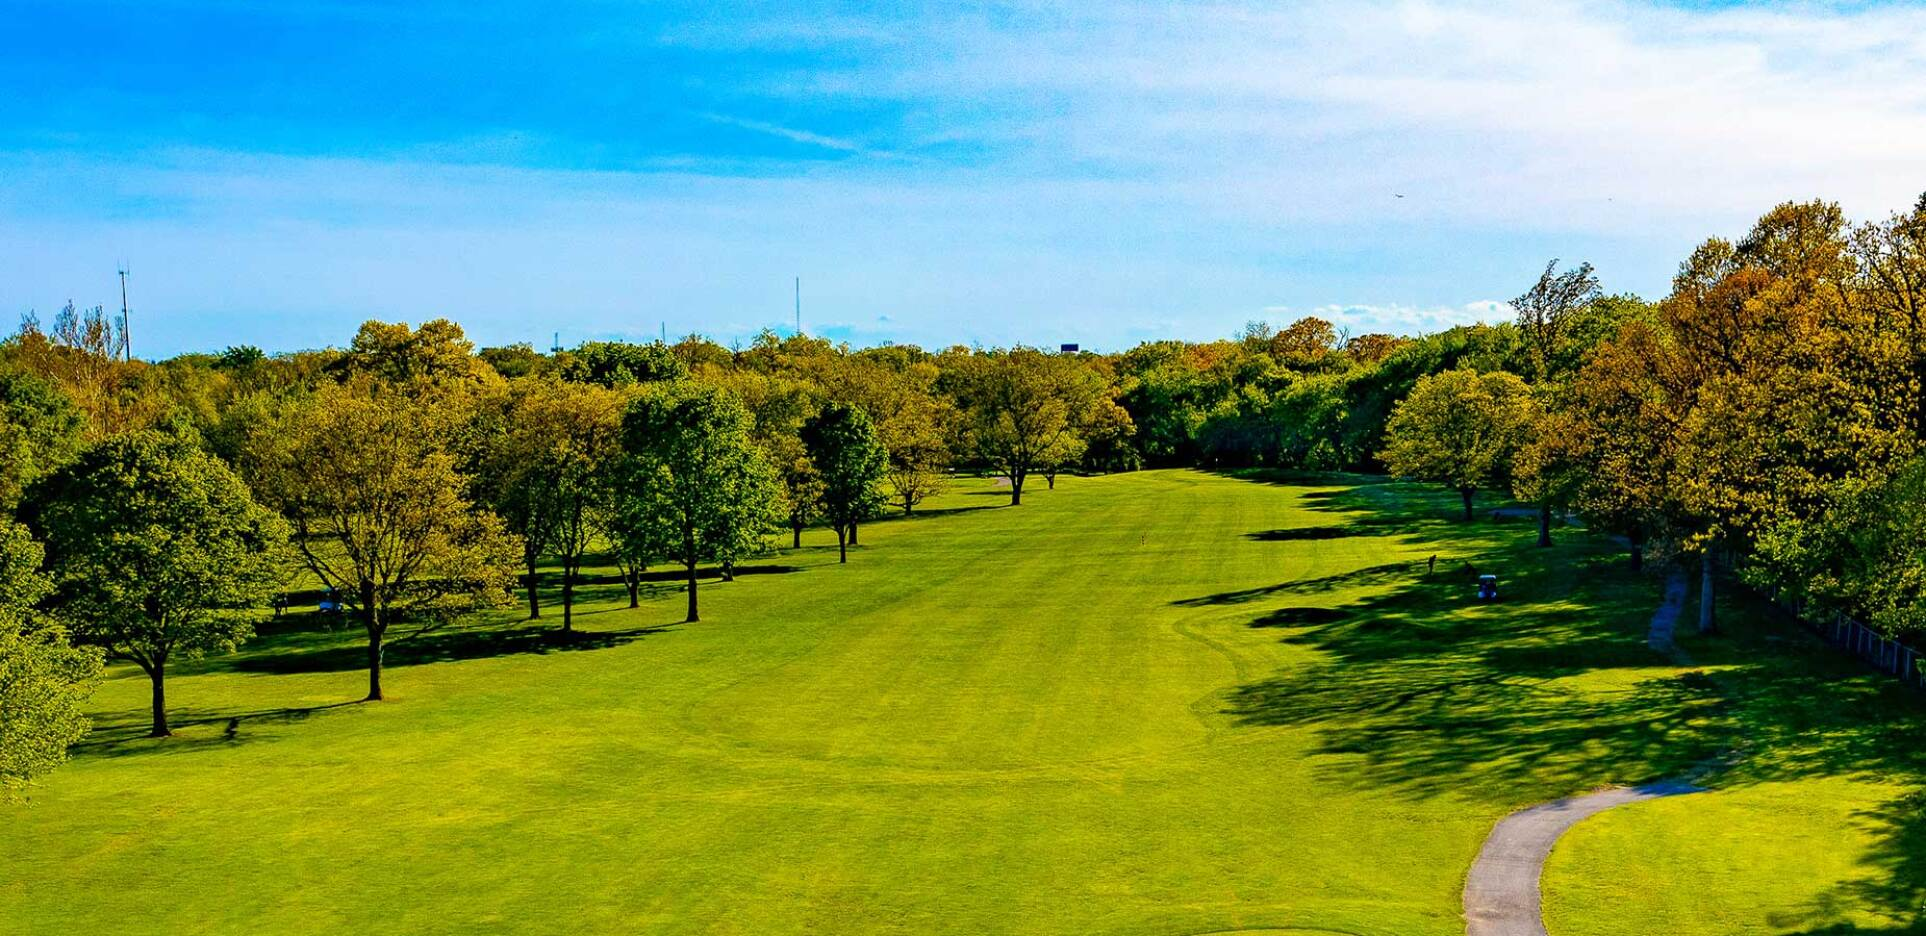 Billy Caldwell Golf Course Drone Photography